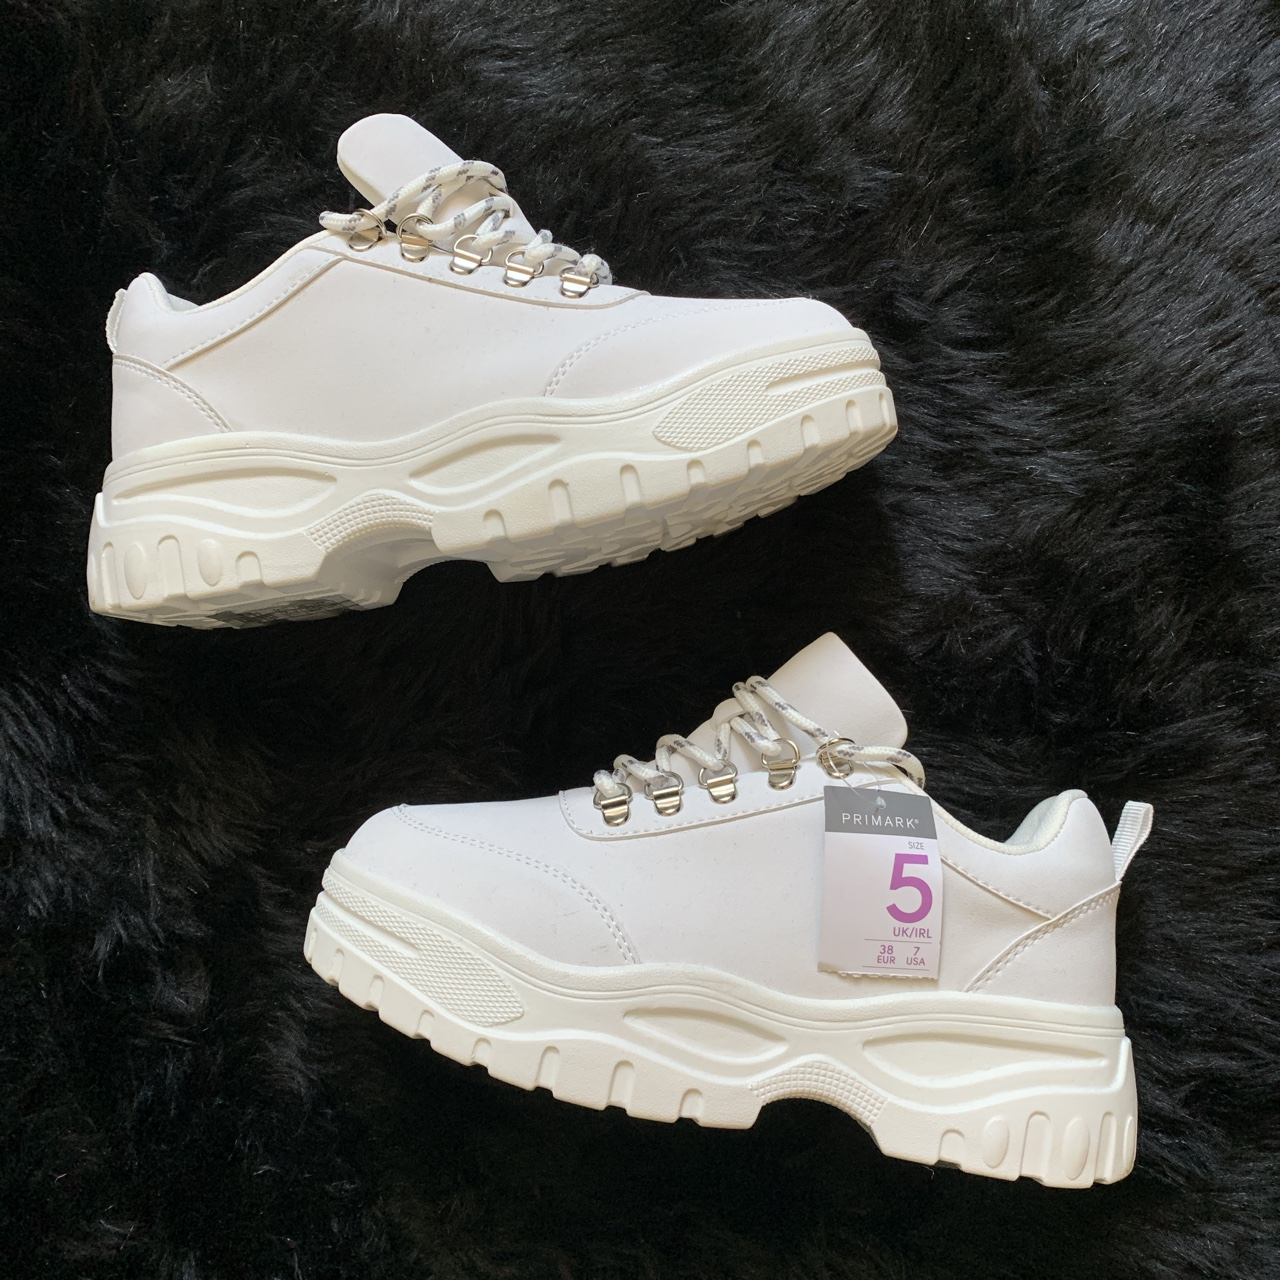 uk size 5 chunky white trainers - Depop